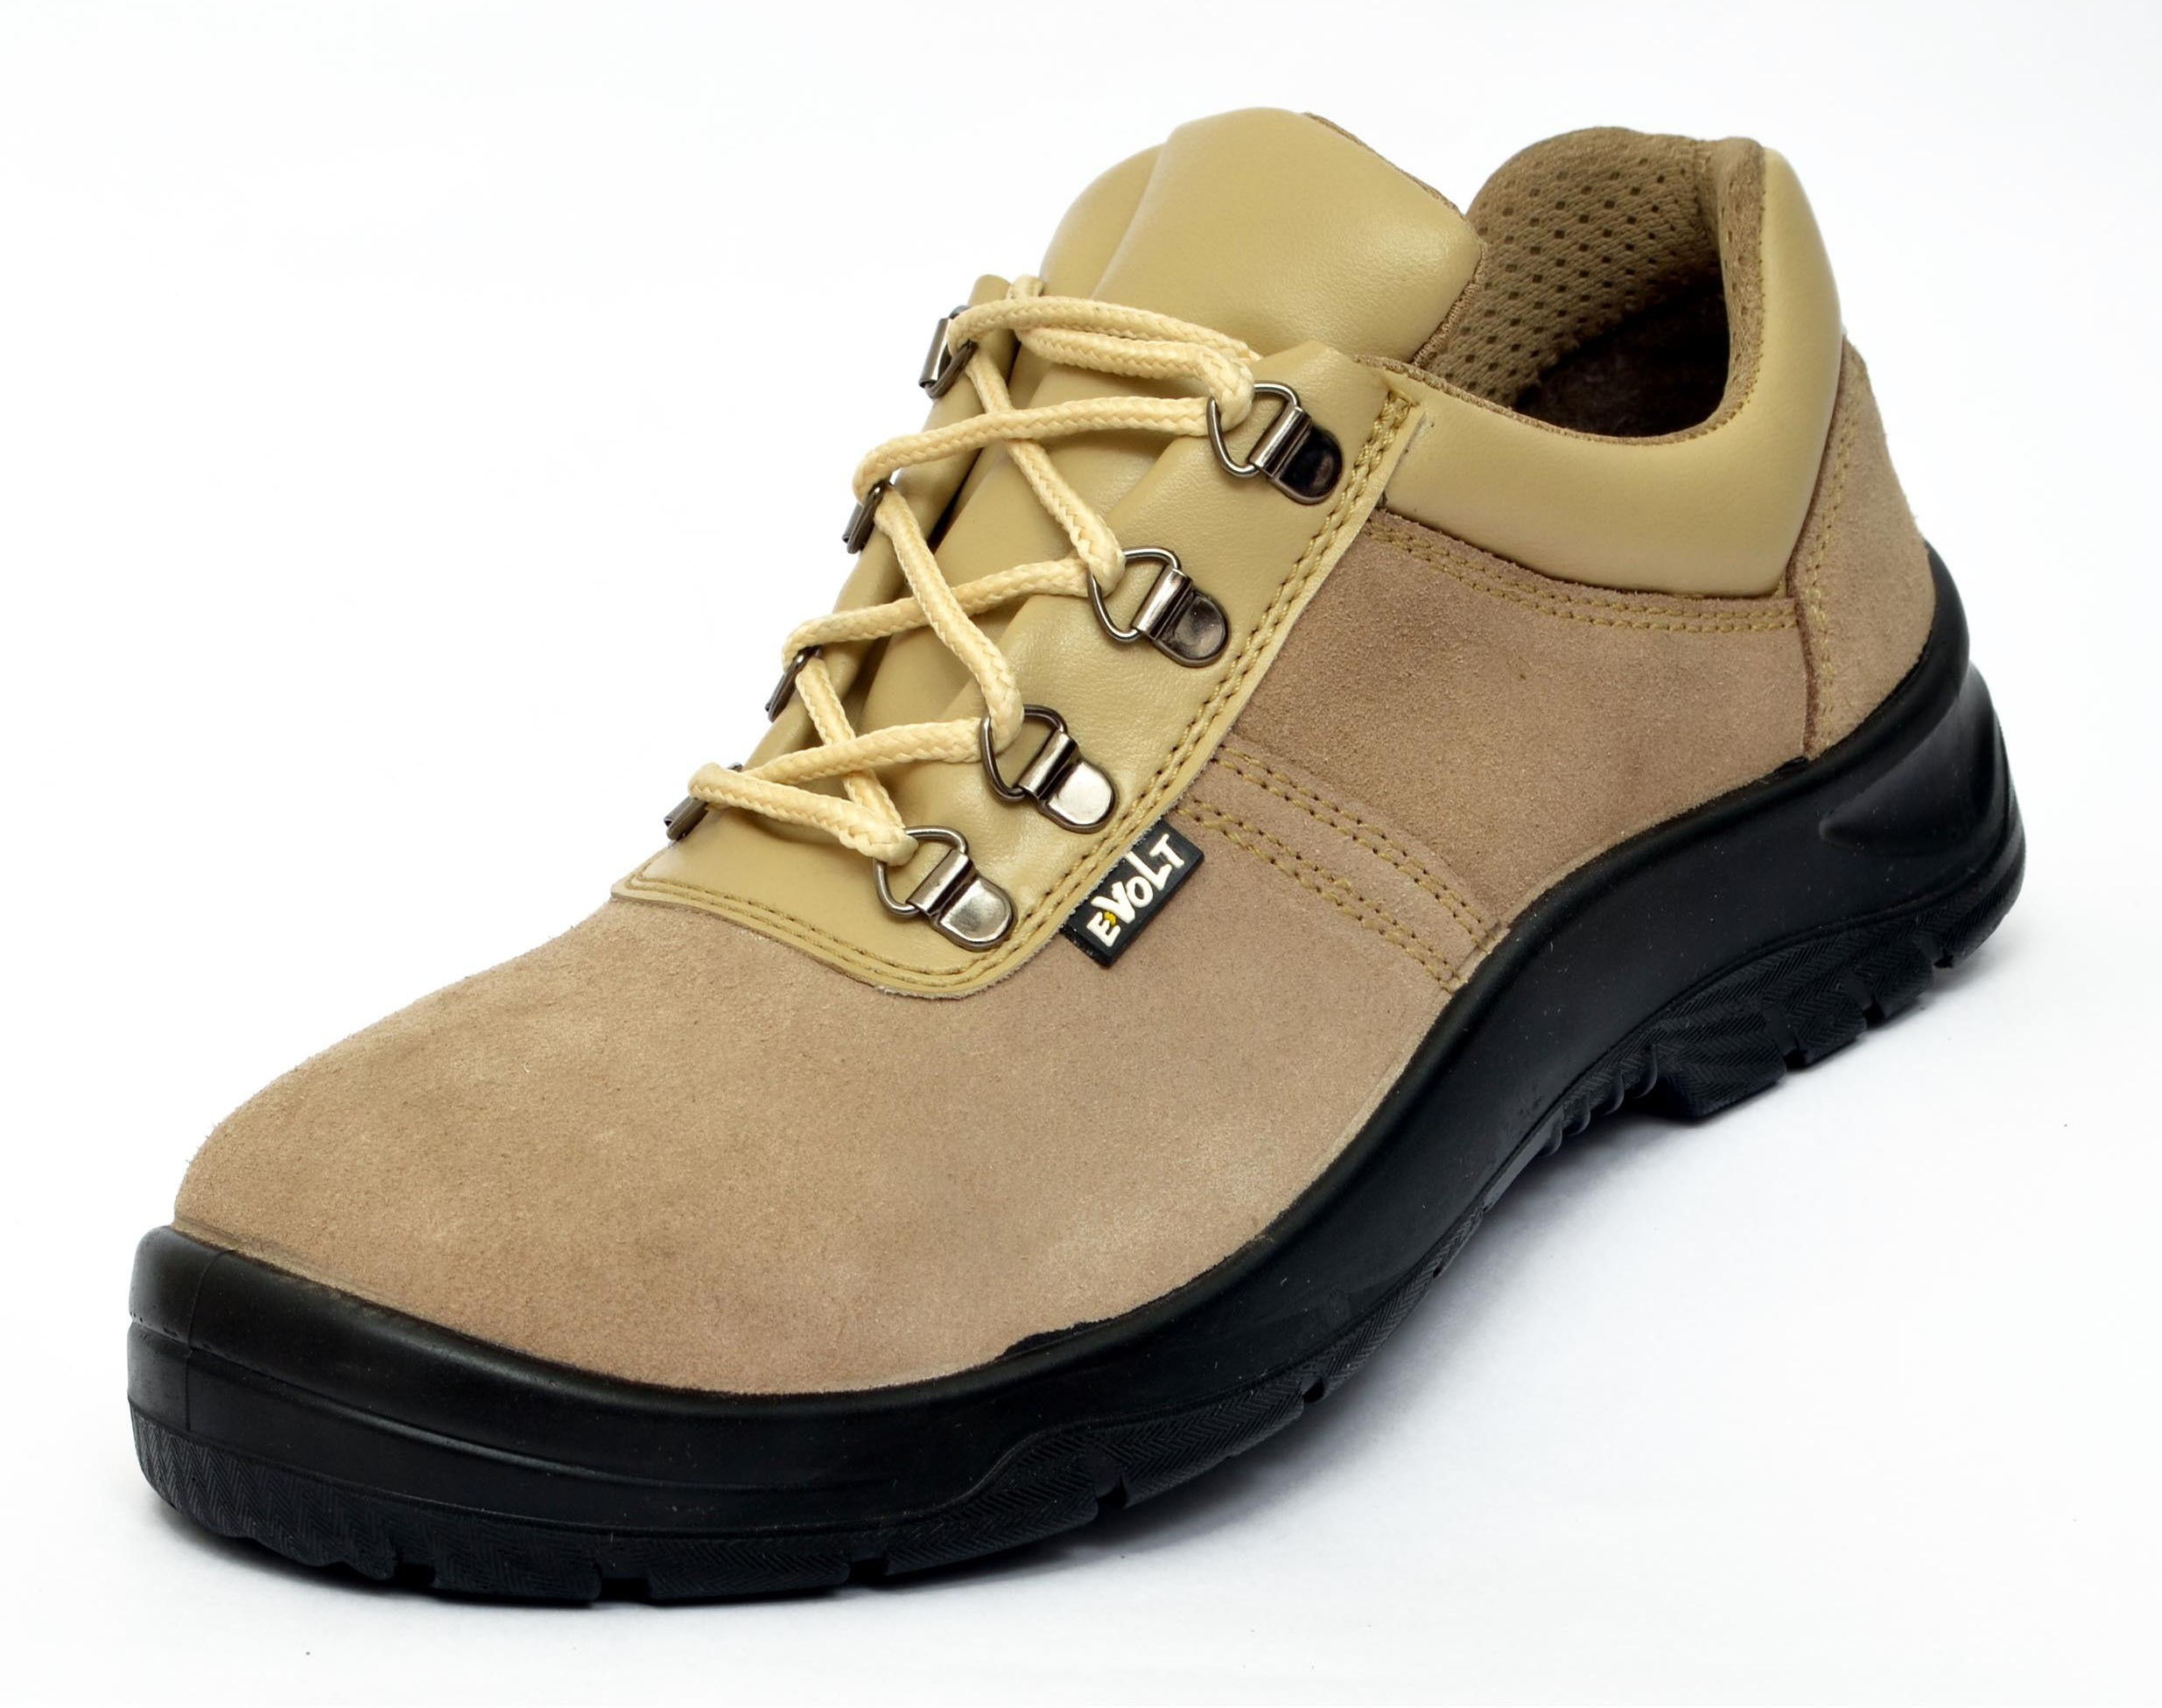 E Volt Wolf ISI Marked Safety Shoe Casuals(Beige) Image